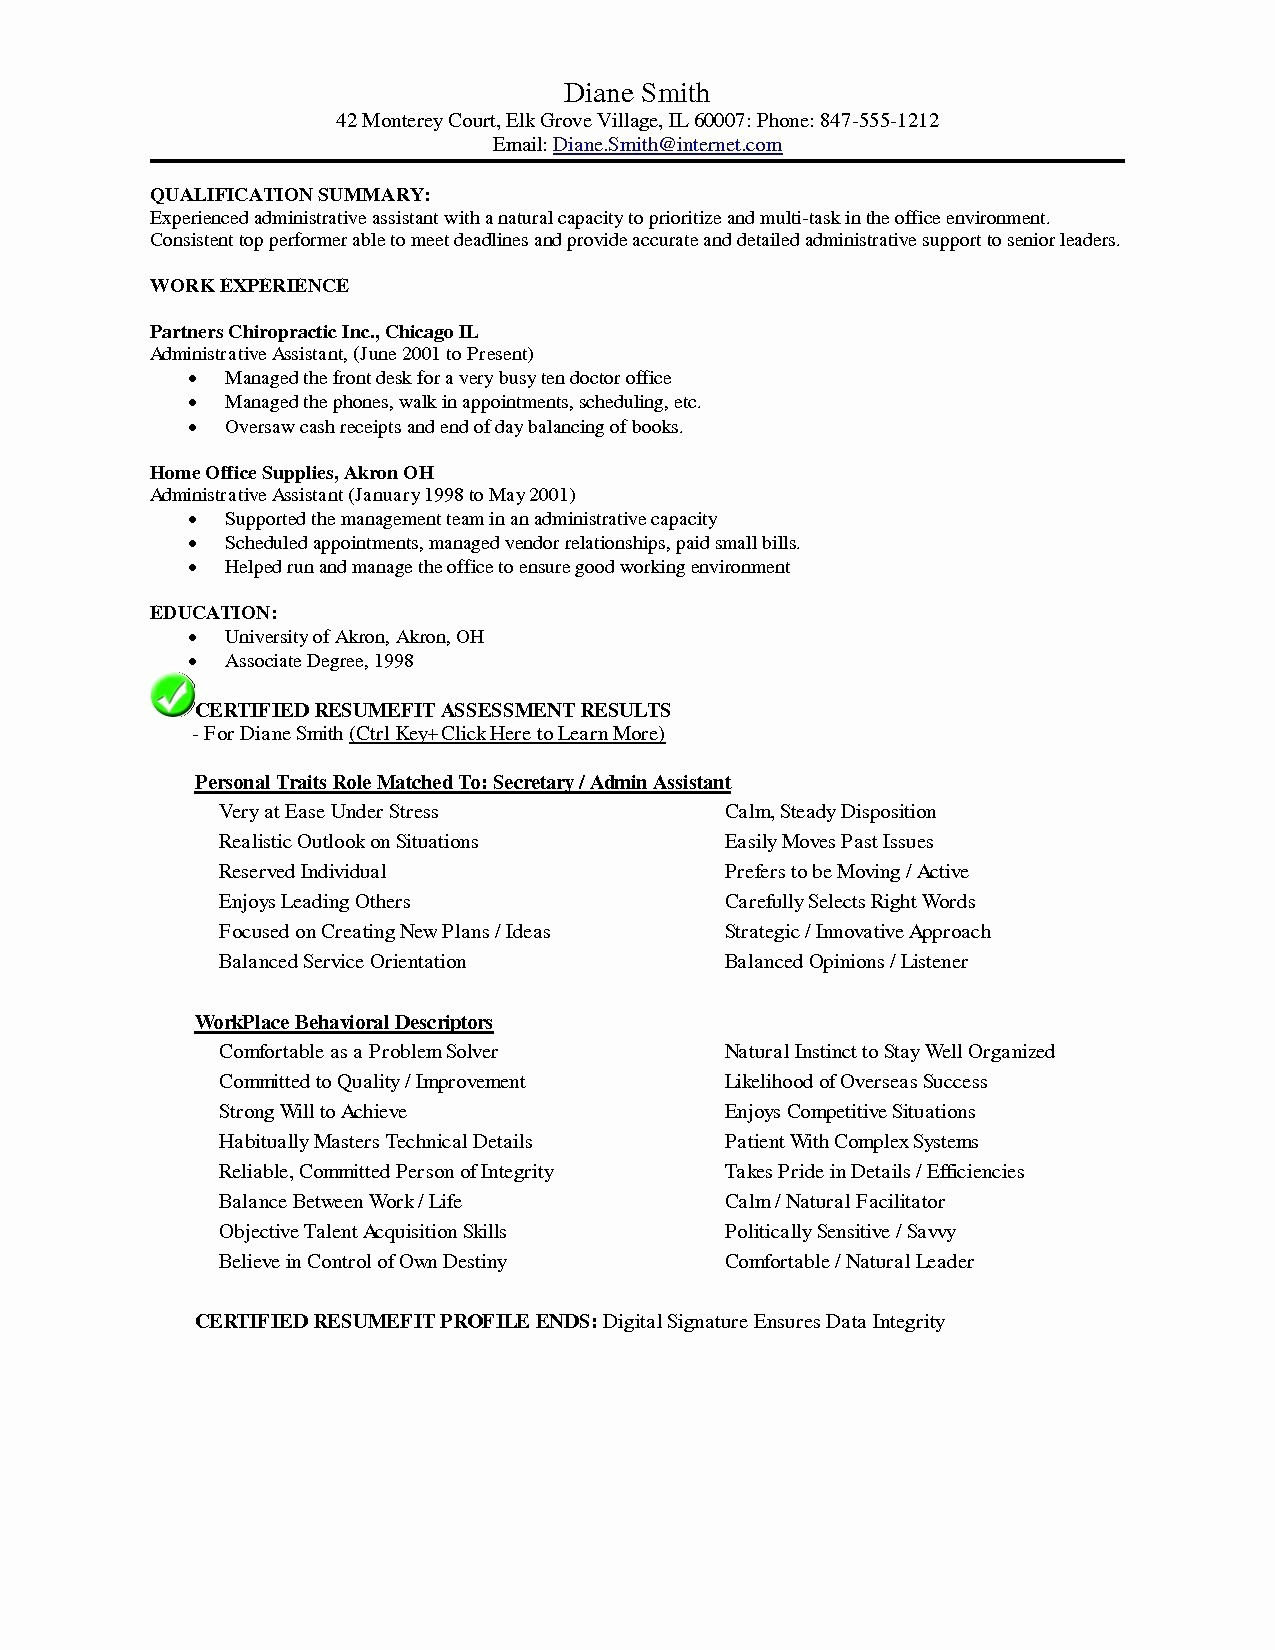 Best Administrative assistant Resume - New Resume Samples for Administrative assistant